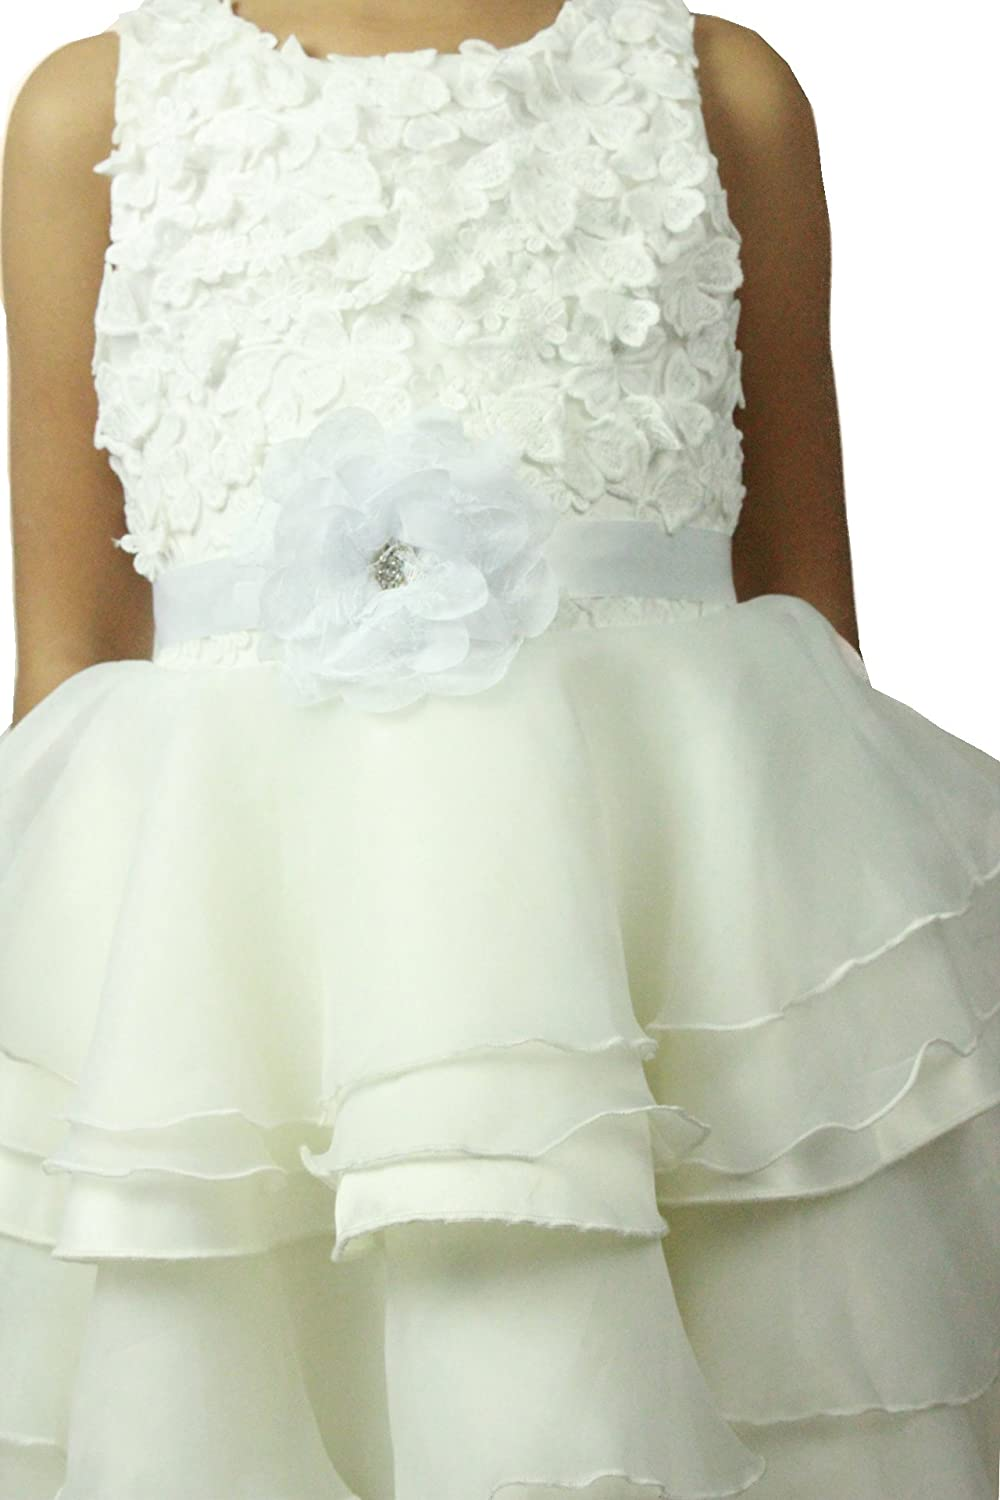 Cute one big flowers girls dress sash flowergirls sash (White) Lemandy